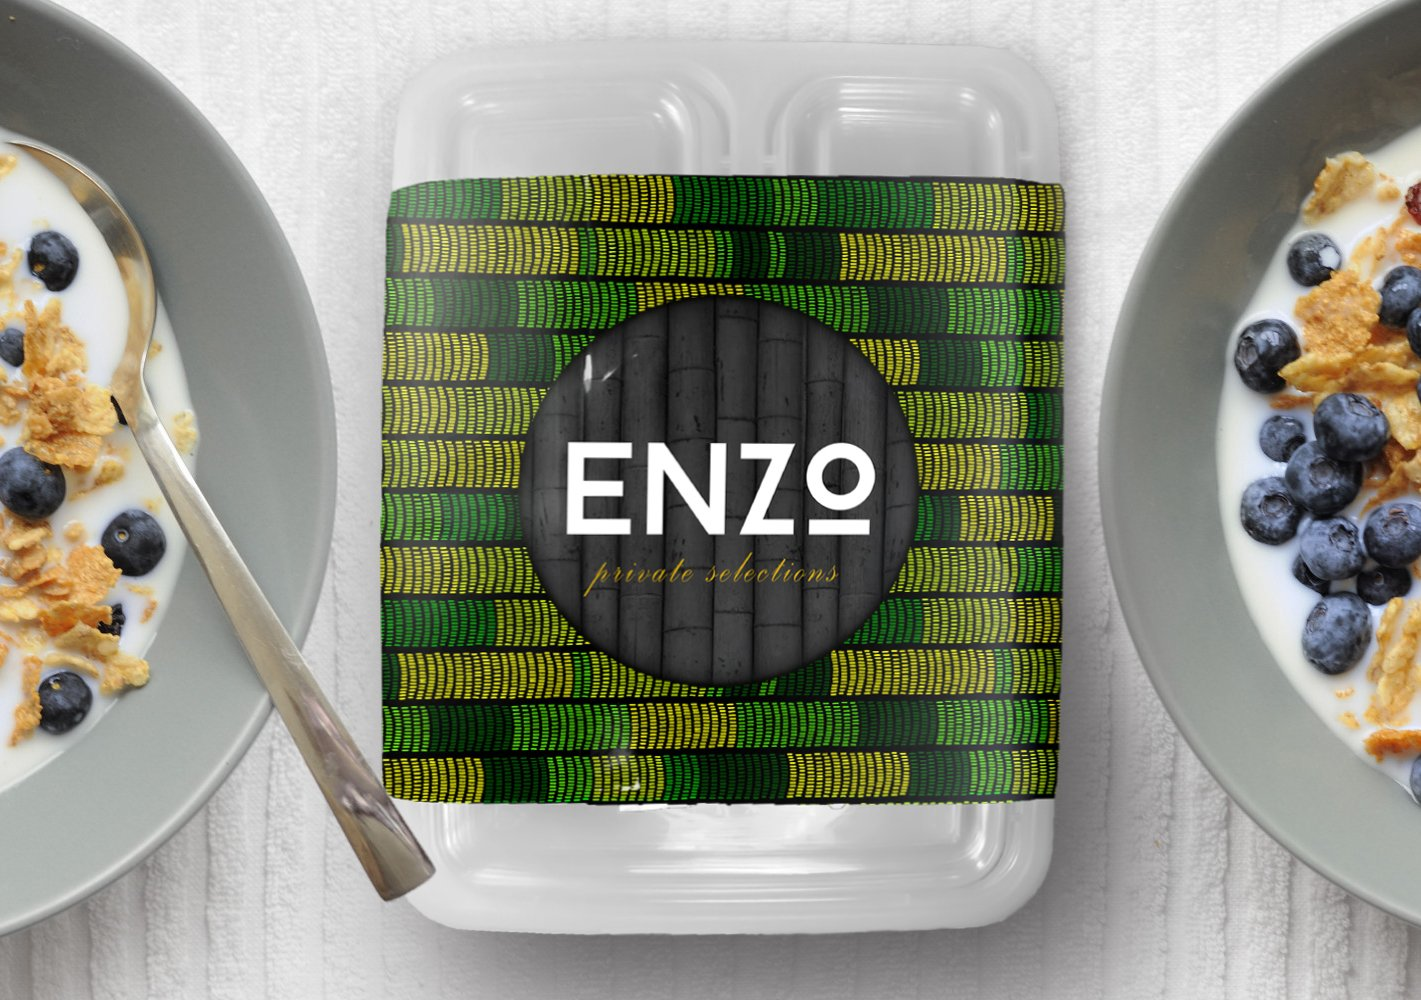 enzo meal prep containers